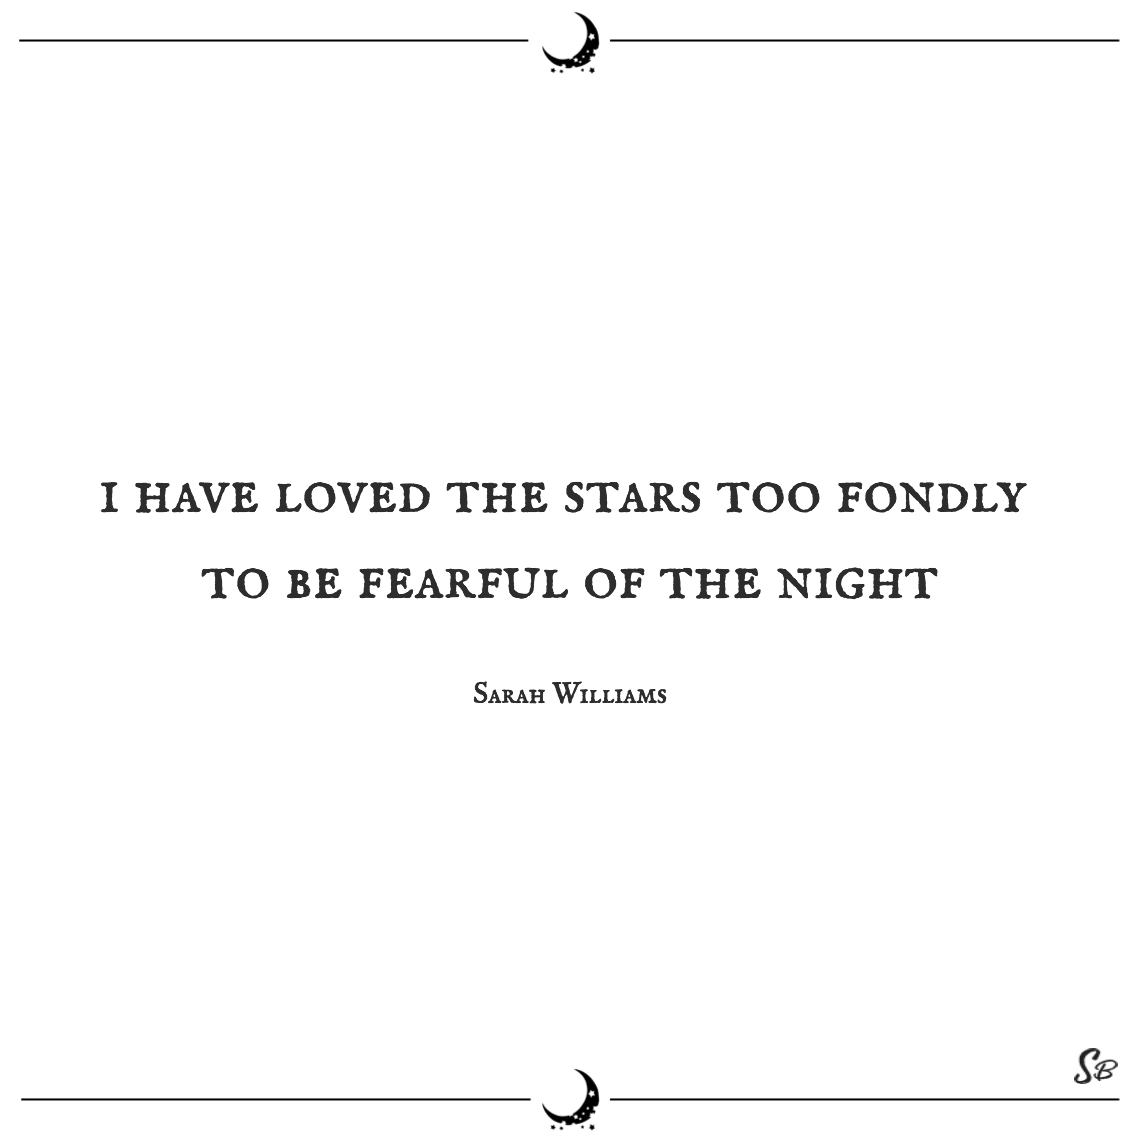 I have loved the stars too fondly to be fearful of the night sarah williams